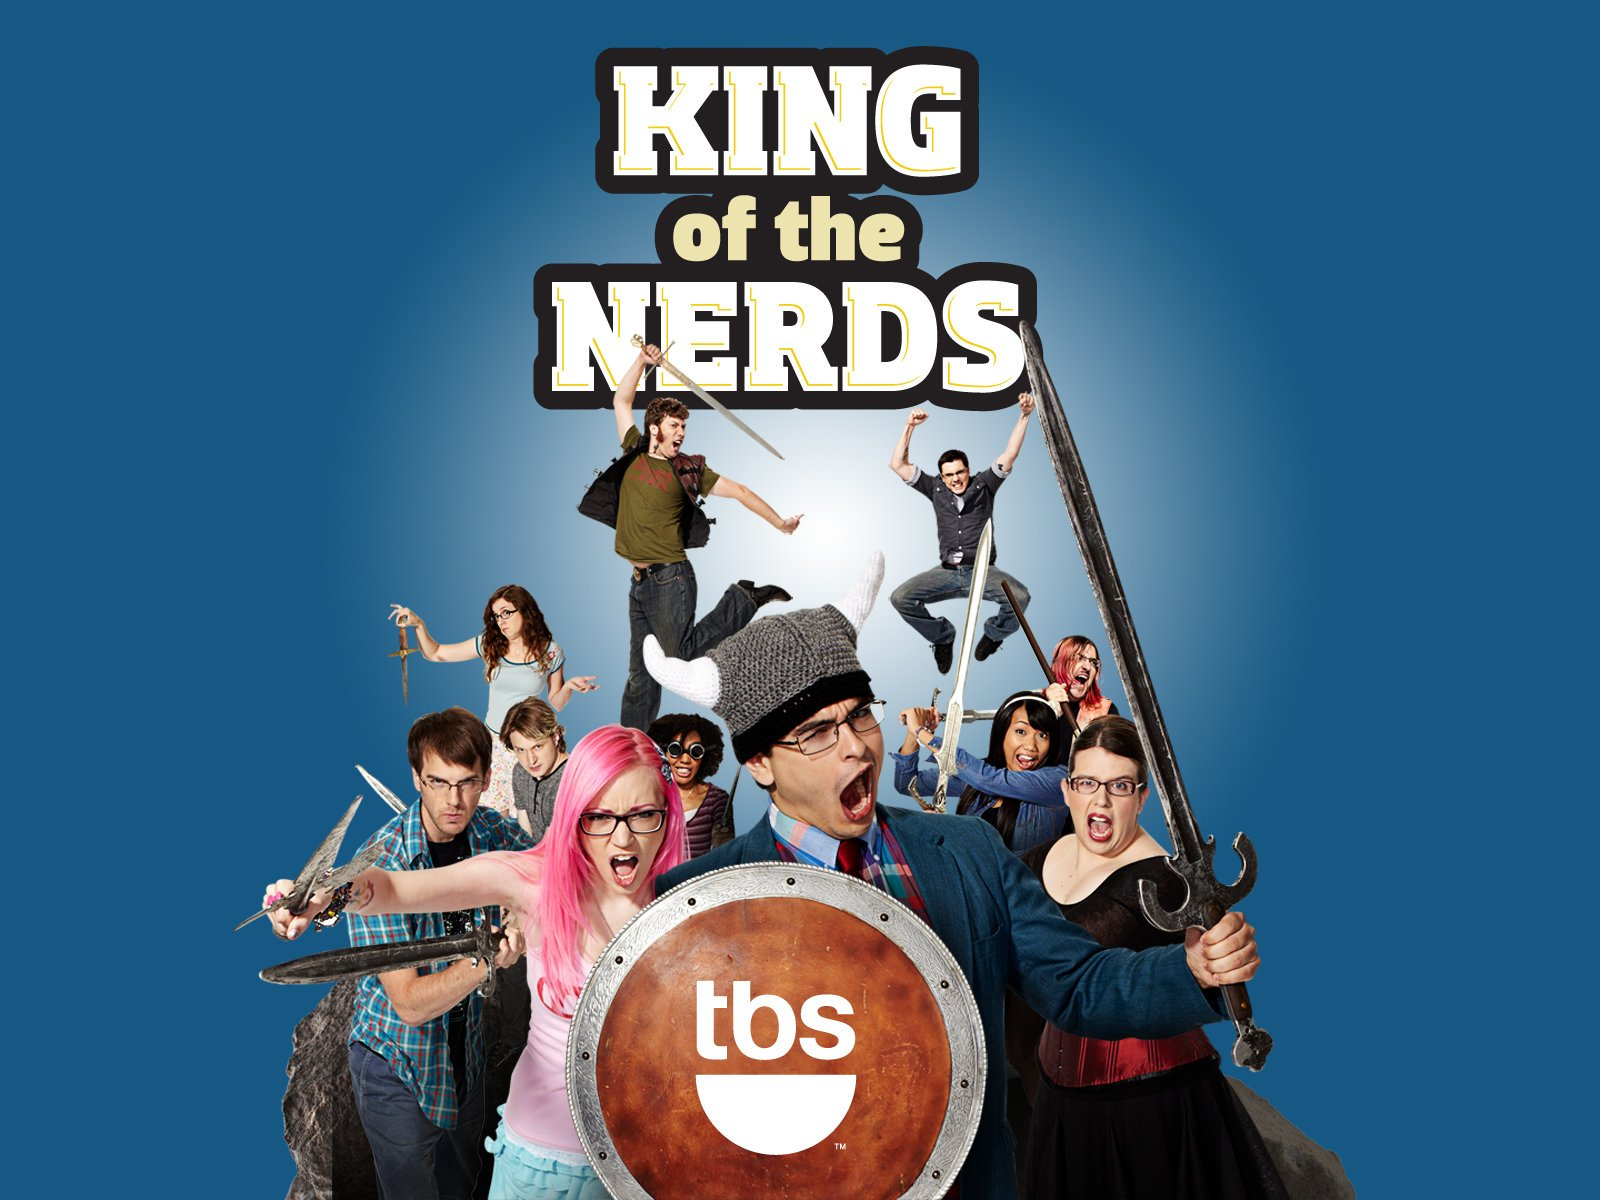 King of the nerds welcome to the nerdvana online dating